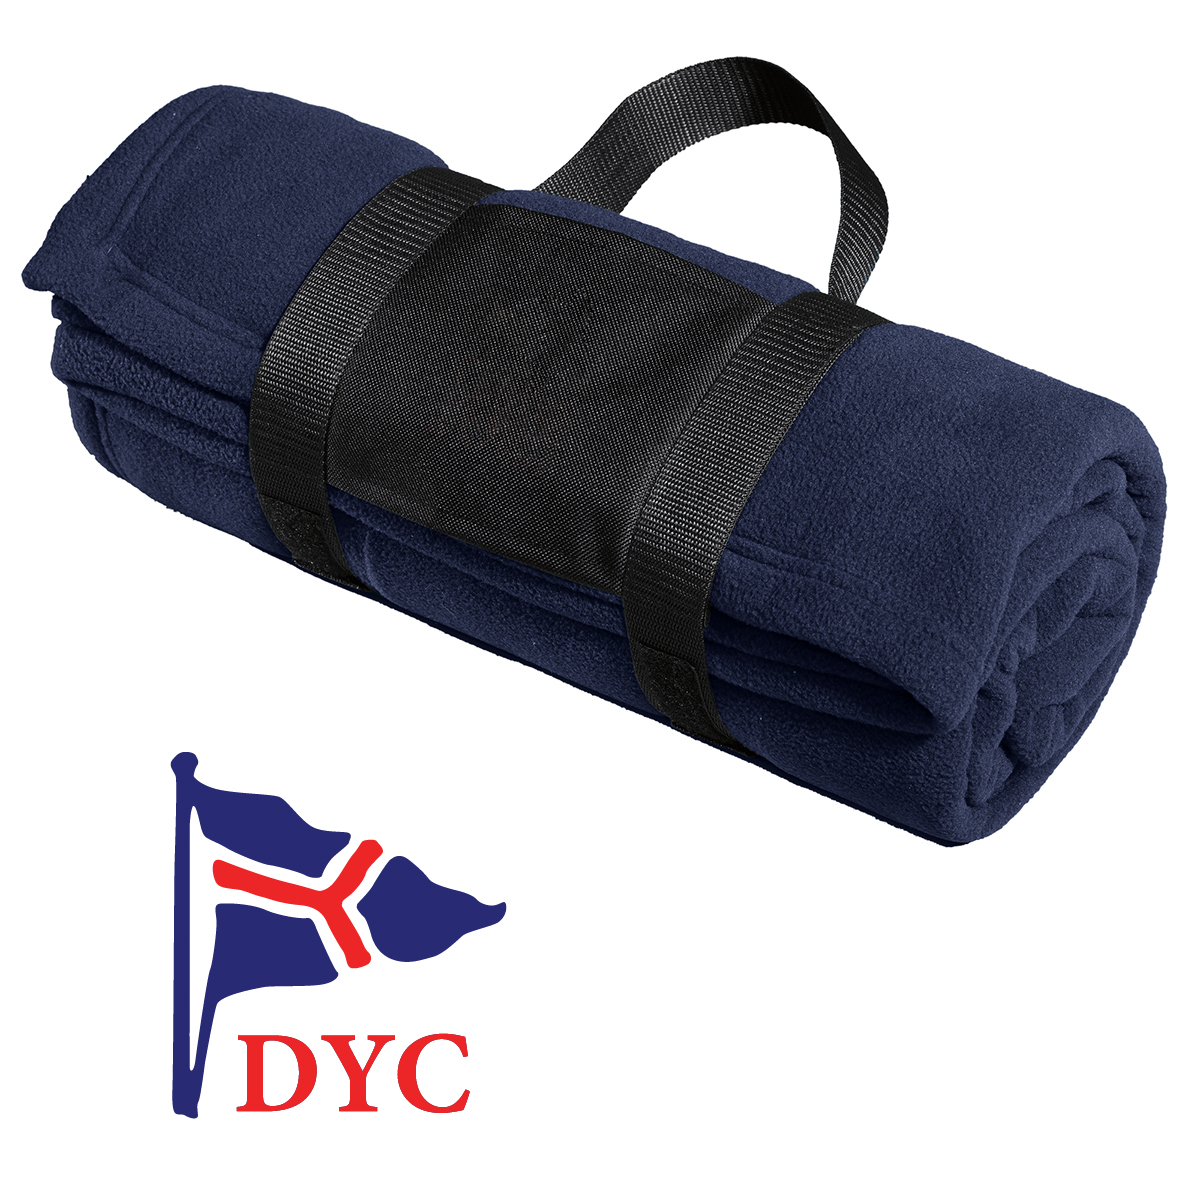 DEVON YACHT CLUB FLEECE BLANKET